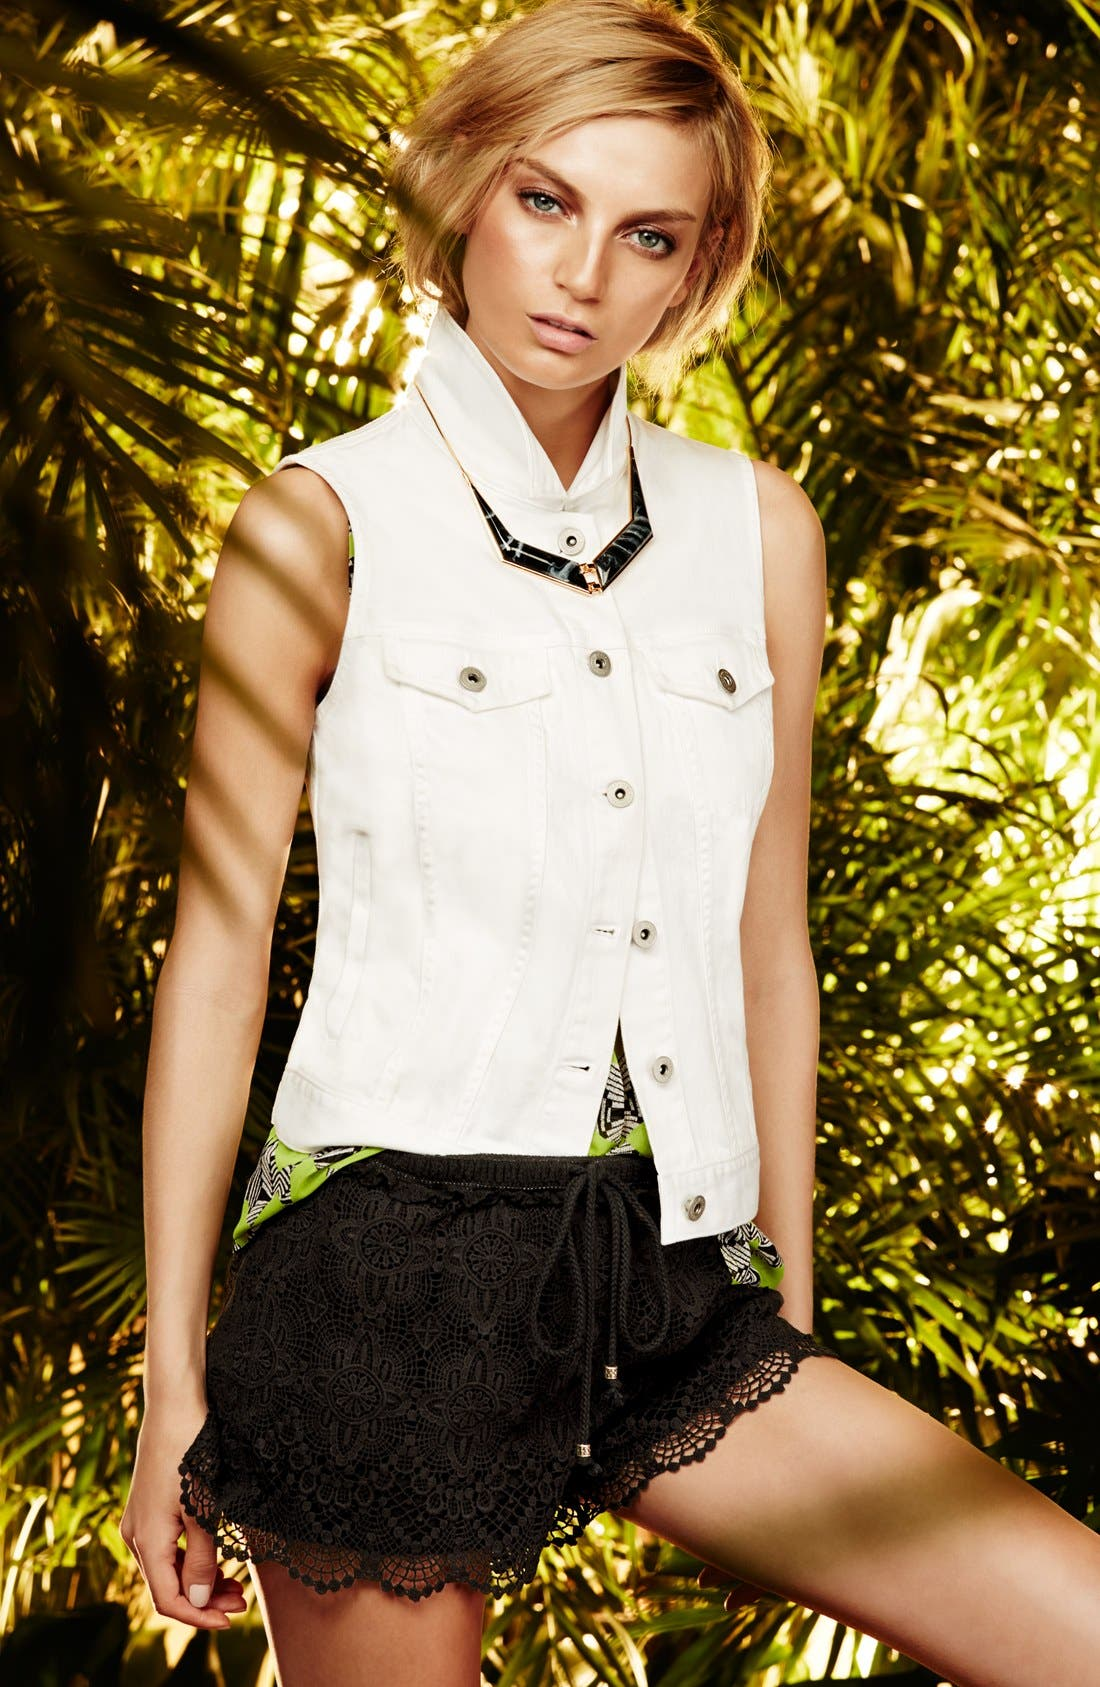 Alternate Image 1 Selected - Two by Vince Camuto Denim Vest, Woven Tank & Lace Shorts